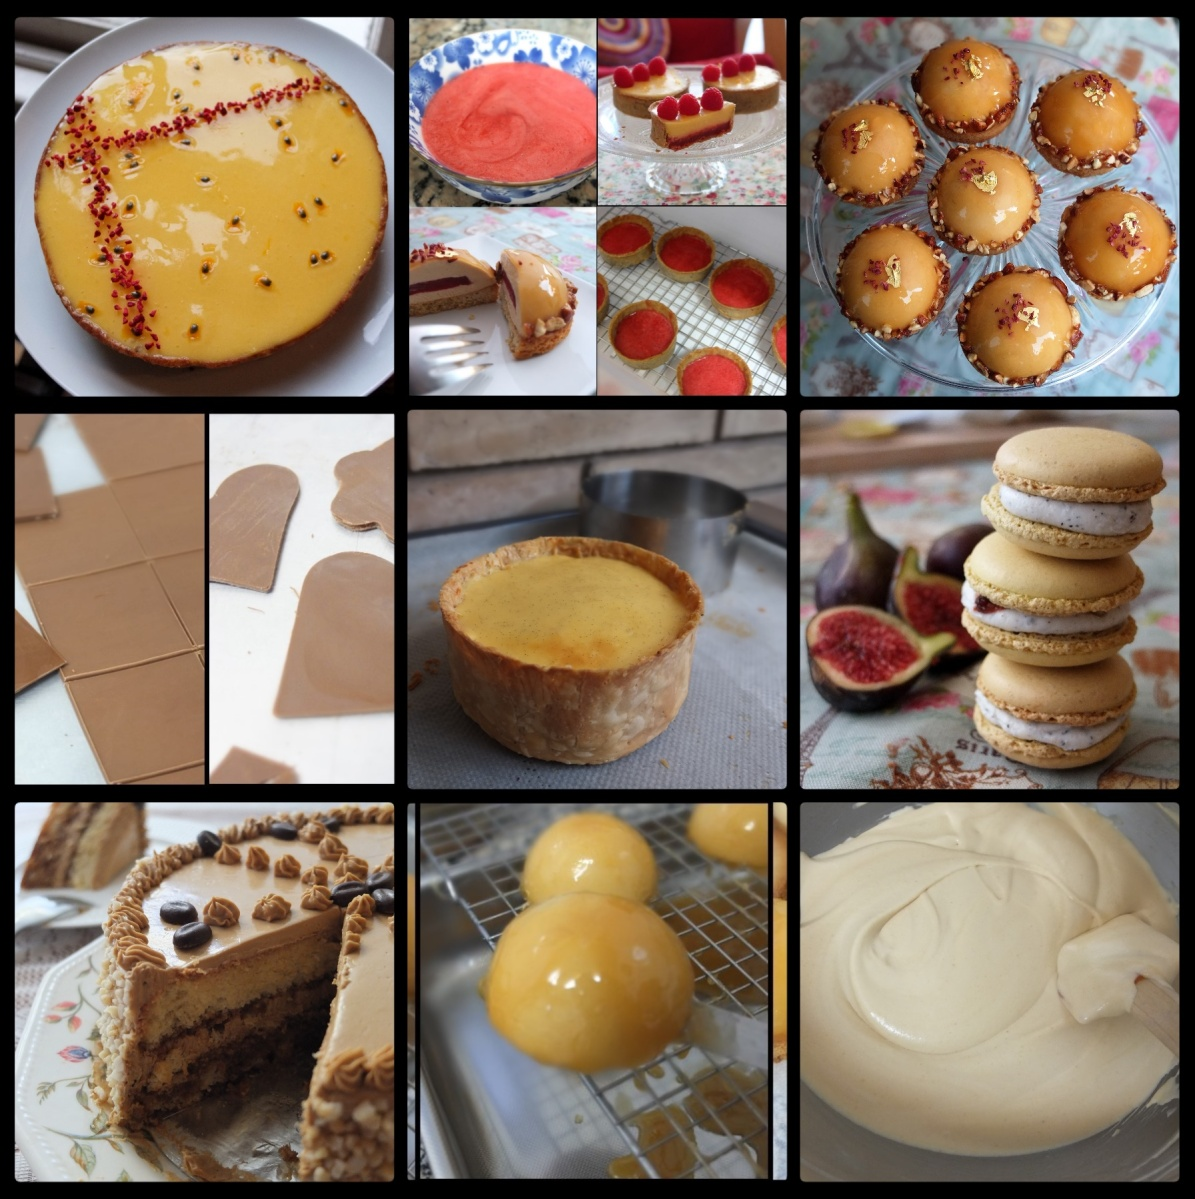 Happy new year 2019 baking plans and top recipes from 2018!  Photos, trends, inspiration ... :)